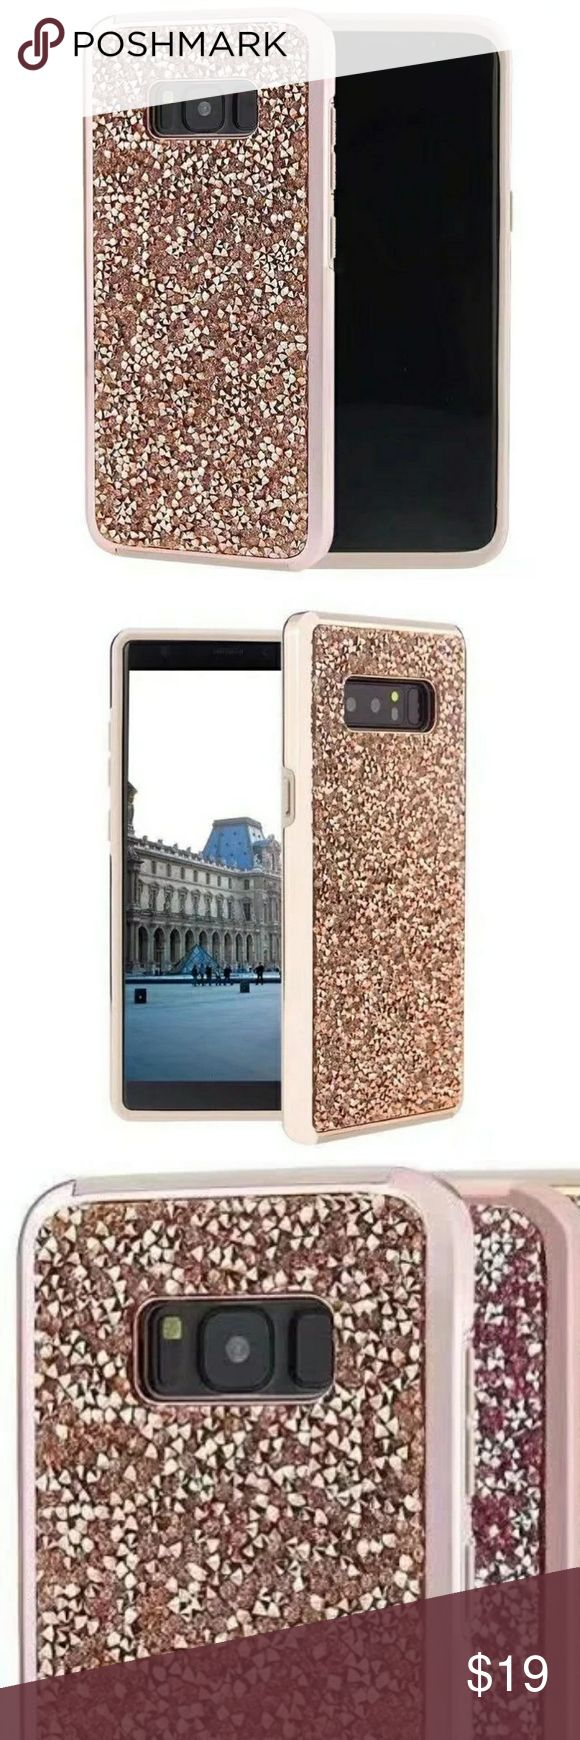 Galaxy S8/S8+/Note 8 Case -3 colors choice Rose Gold, Light Purple or Silver Protective Defender TPU(thermoplastic polyurethane) double layer phone case with chrome edge.  A 2.9mm lip all around the camera  provides perfect protection.  Bling/Rhinestone /Luxury/Crystal/Full Diamond/Jewelled/Apple/cell phone/smartphone/Samsung Galaxy S8/S8 Plus/Note 8 Accessories Phone Cases